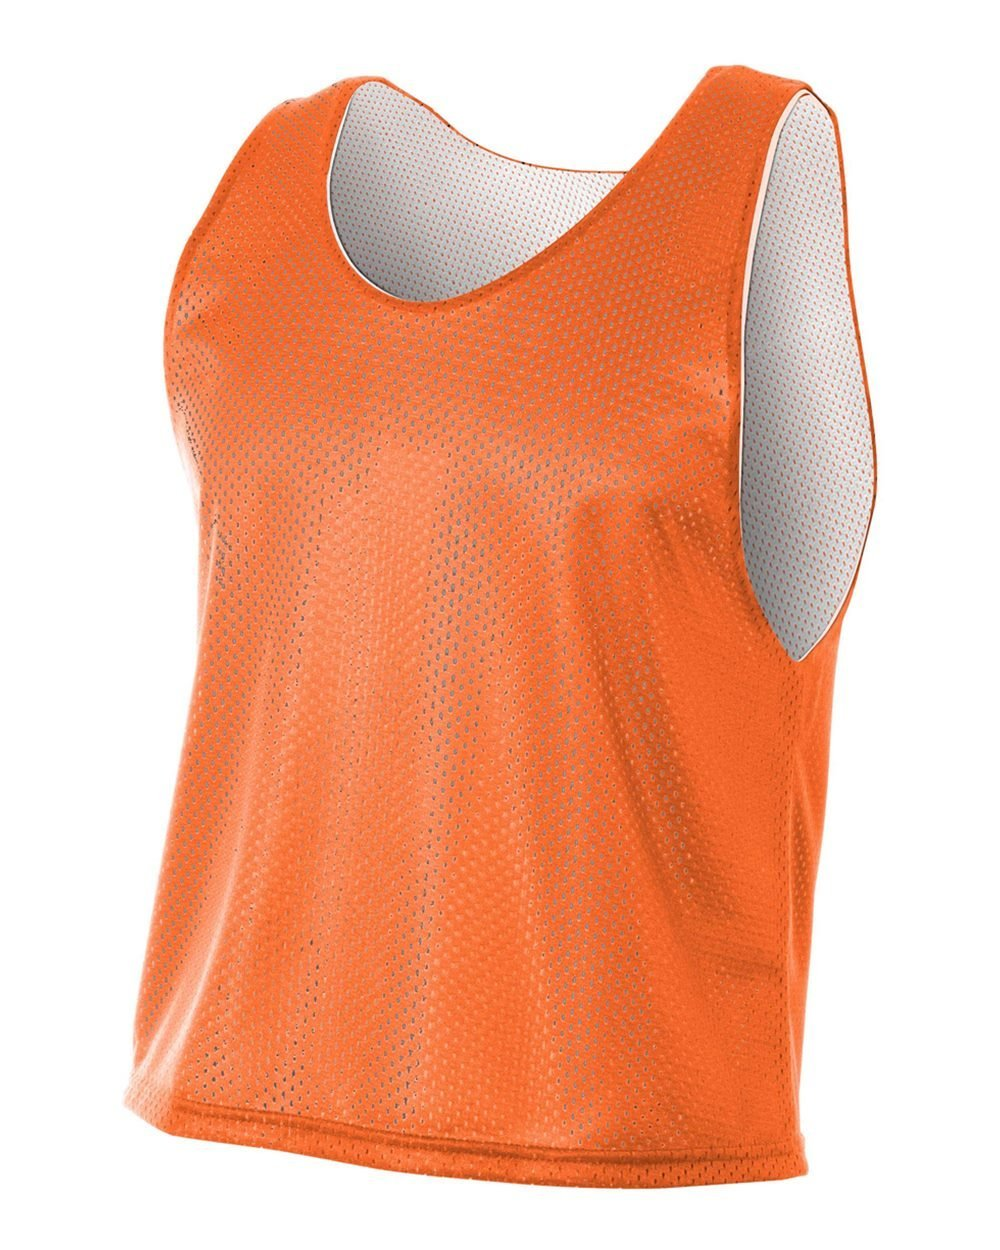 f0079894d7 Get Quotations · Athletic Pinnies Reversible Moisture Wicking Practice  Lacrosse, Soccer, Football Practice Jersey (Available in